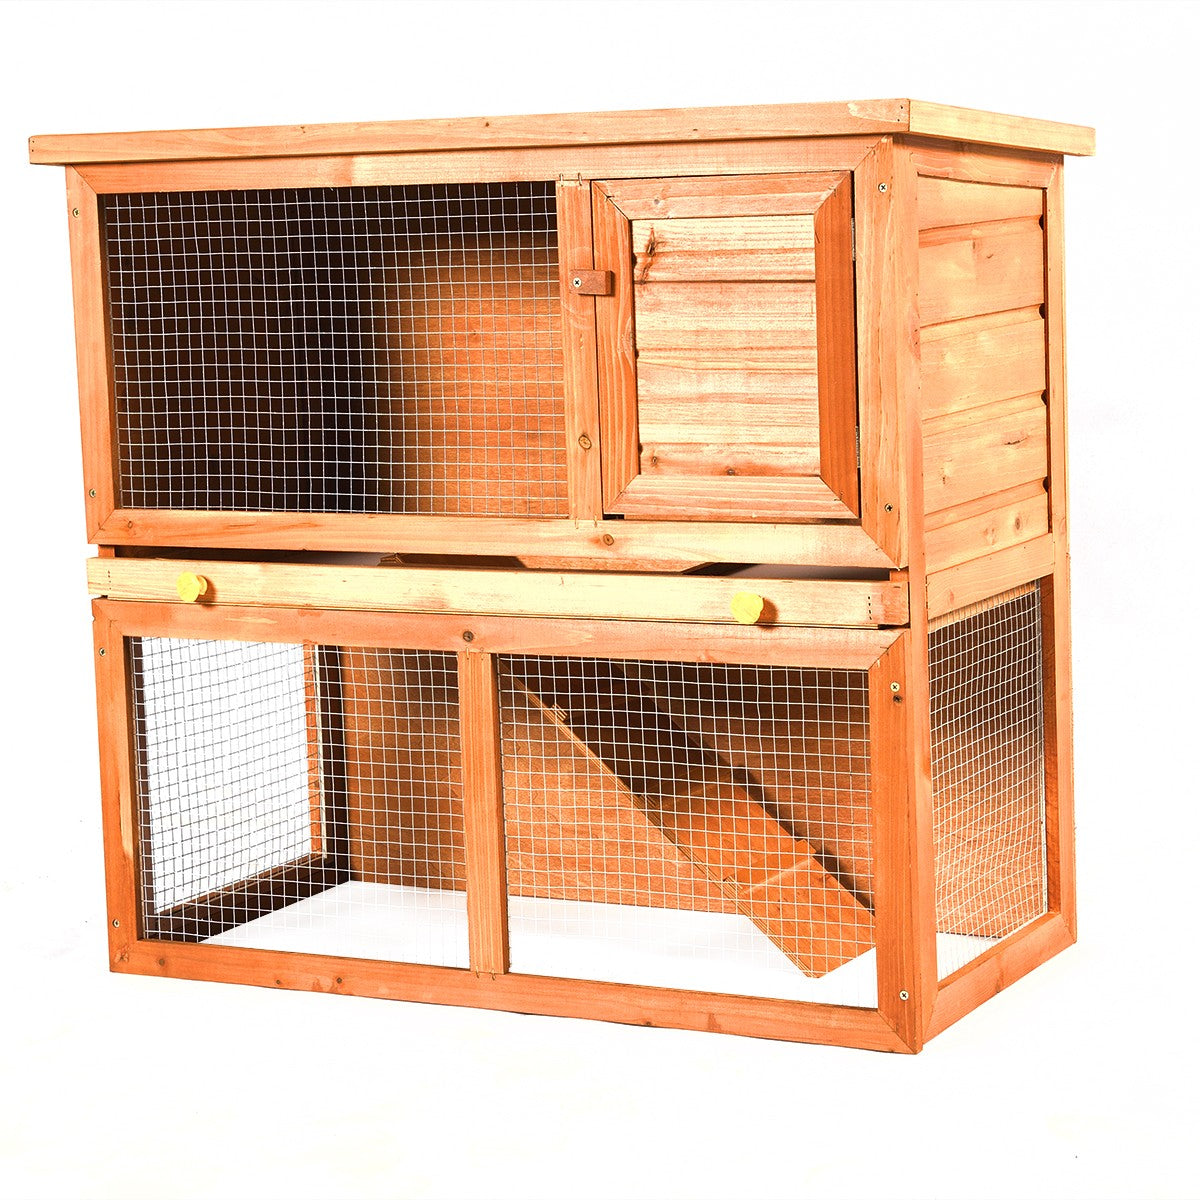 "35"" Wooden Chicken Coop Pet Hutch"